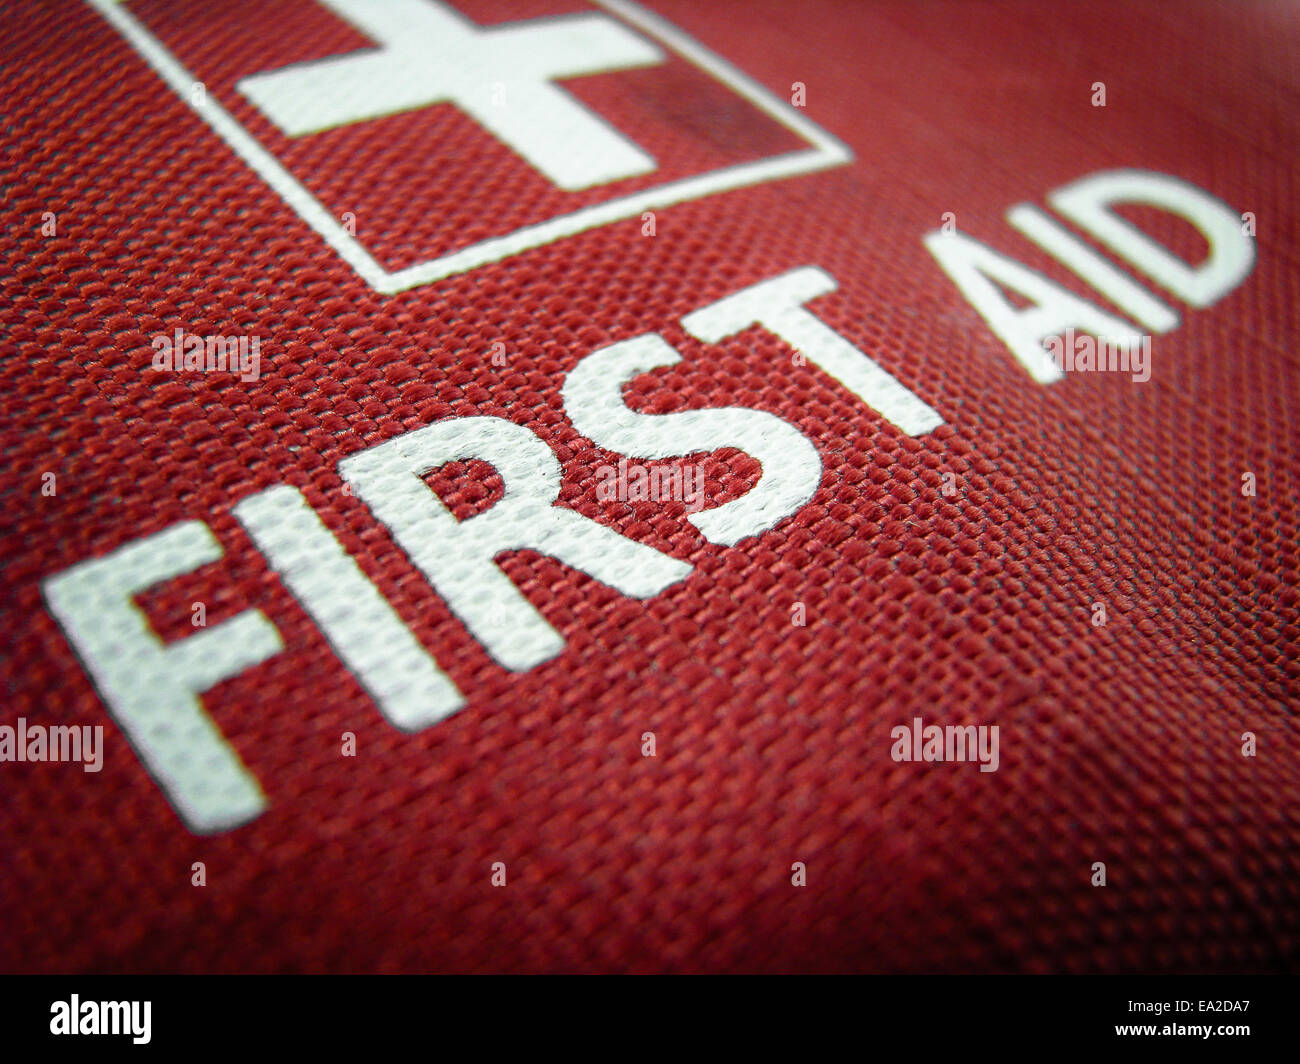 Medical Image Of A First Aid Kit Or Pack - Stock Image